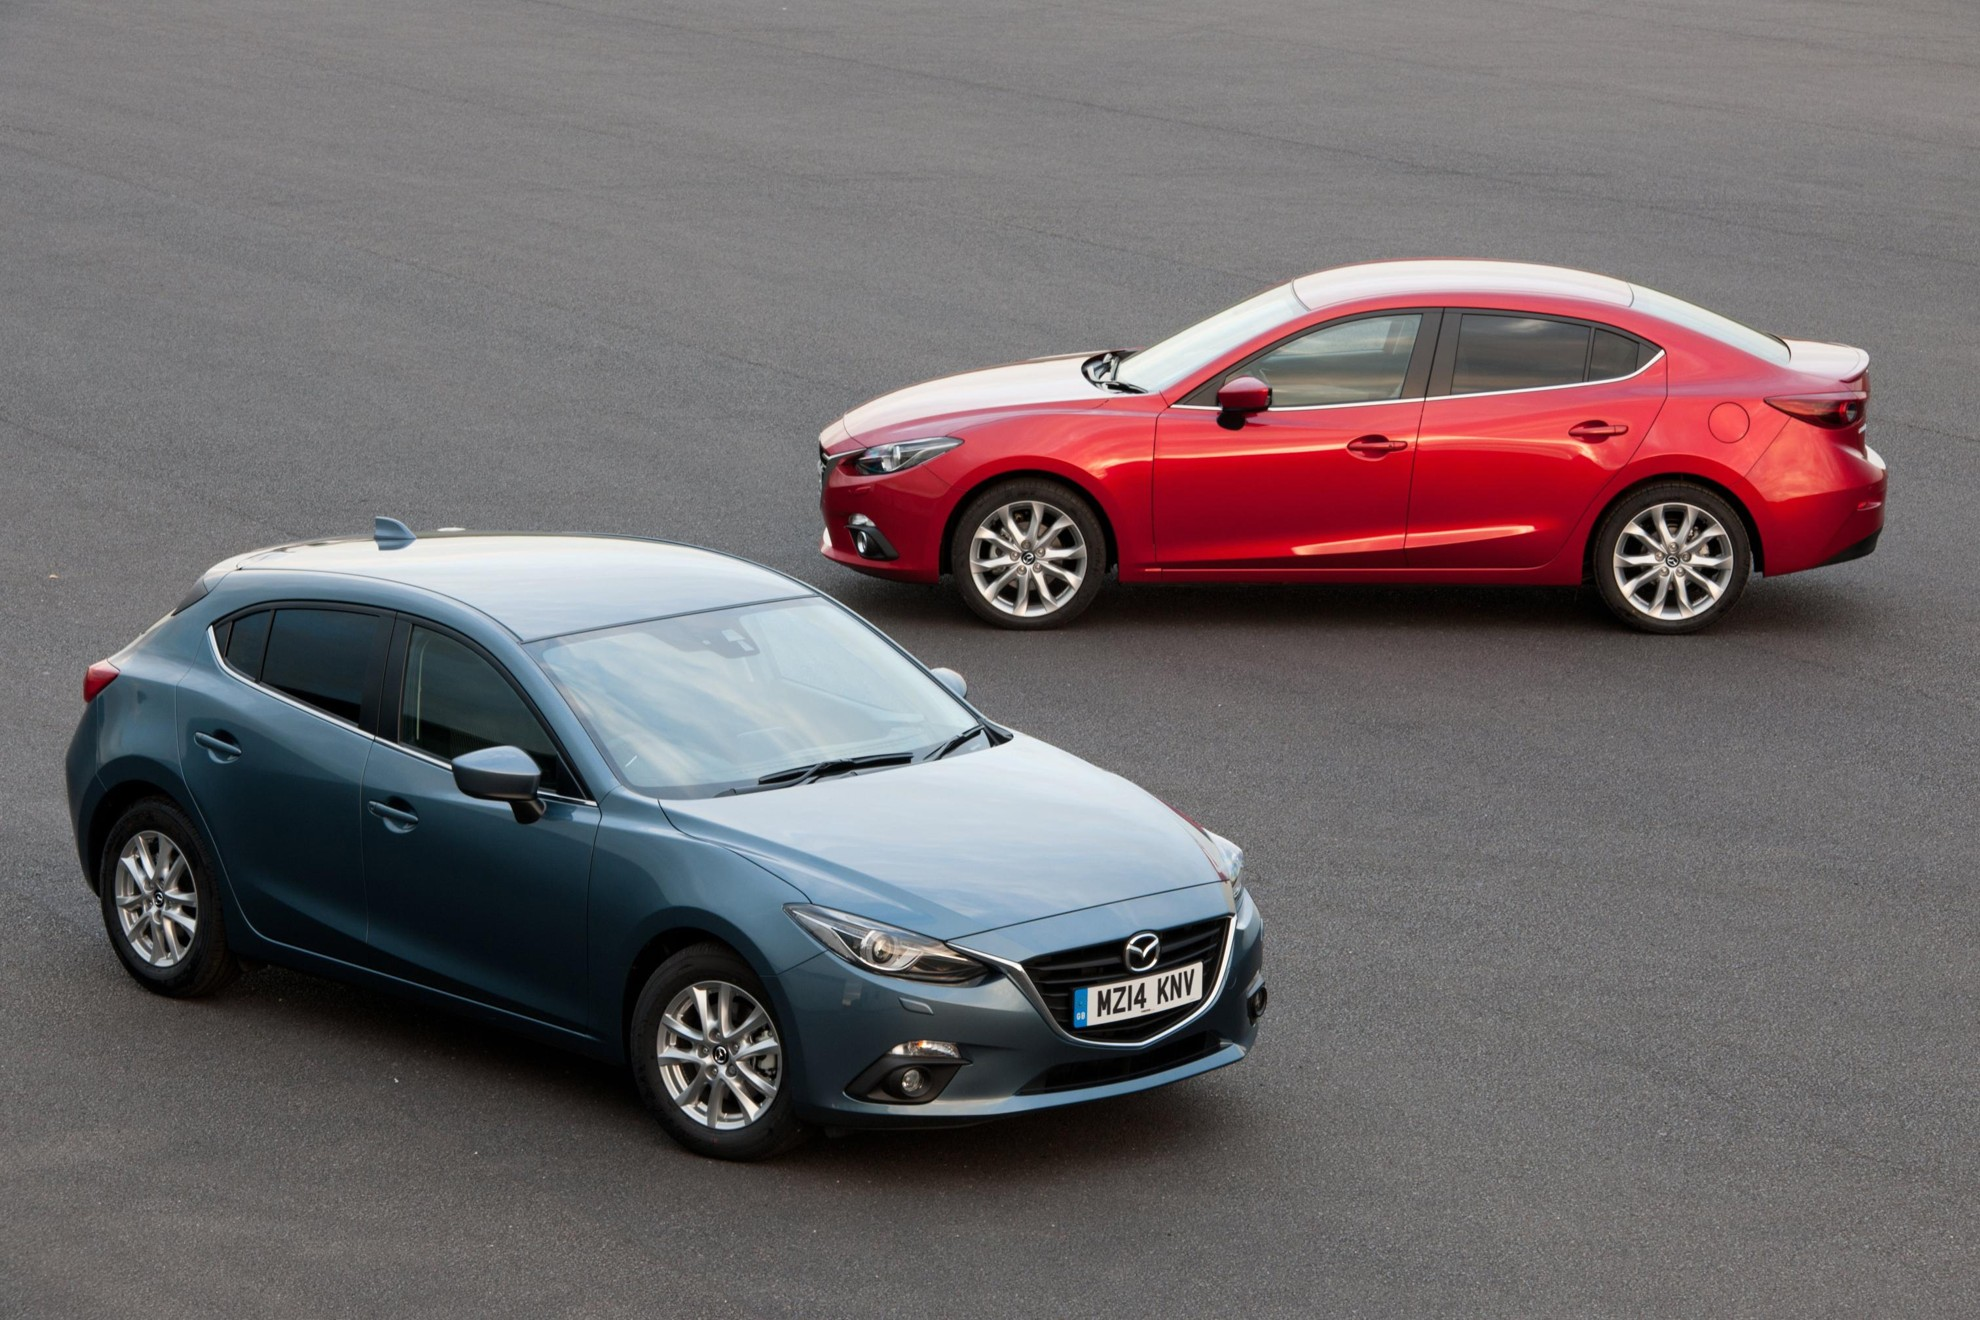 mazda cuts fleet costs with skyactiv technology. Black Bedroom Furniture Sets. Home Design Ideas